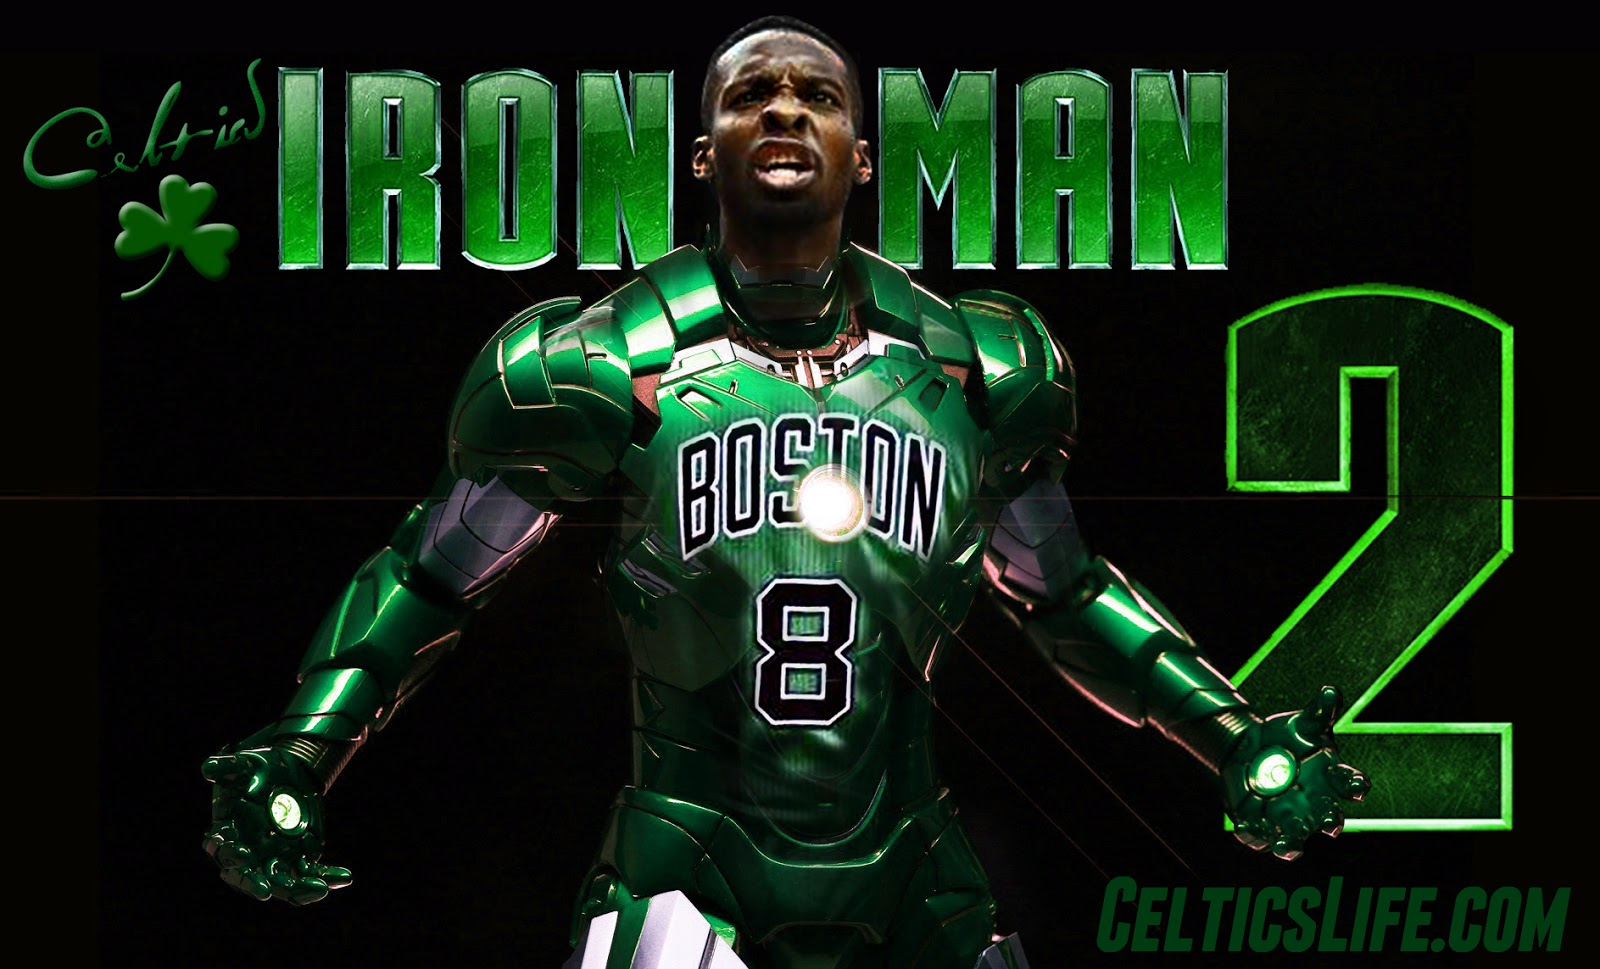 Jeff Green Wallpaper Iron Man Images & Pictures - Becuo